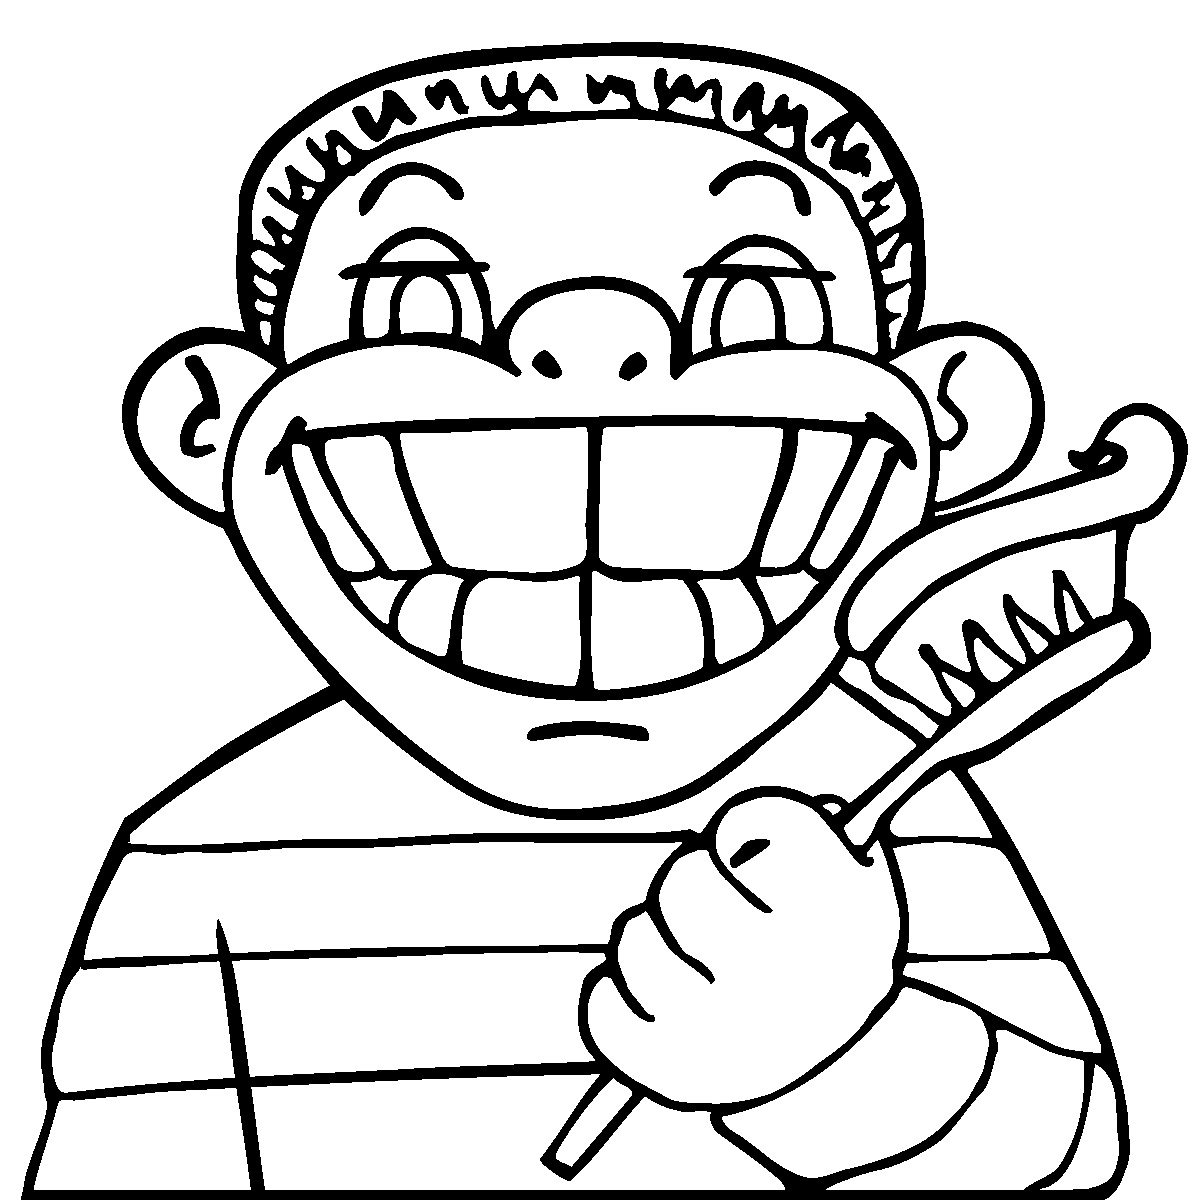 clip art coloring pages clip art kids chores picking up toys bw abcteach pages coloring art clip